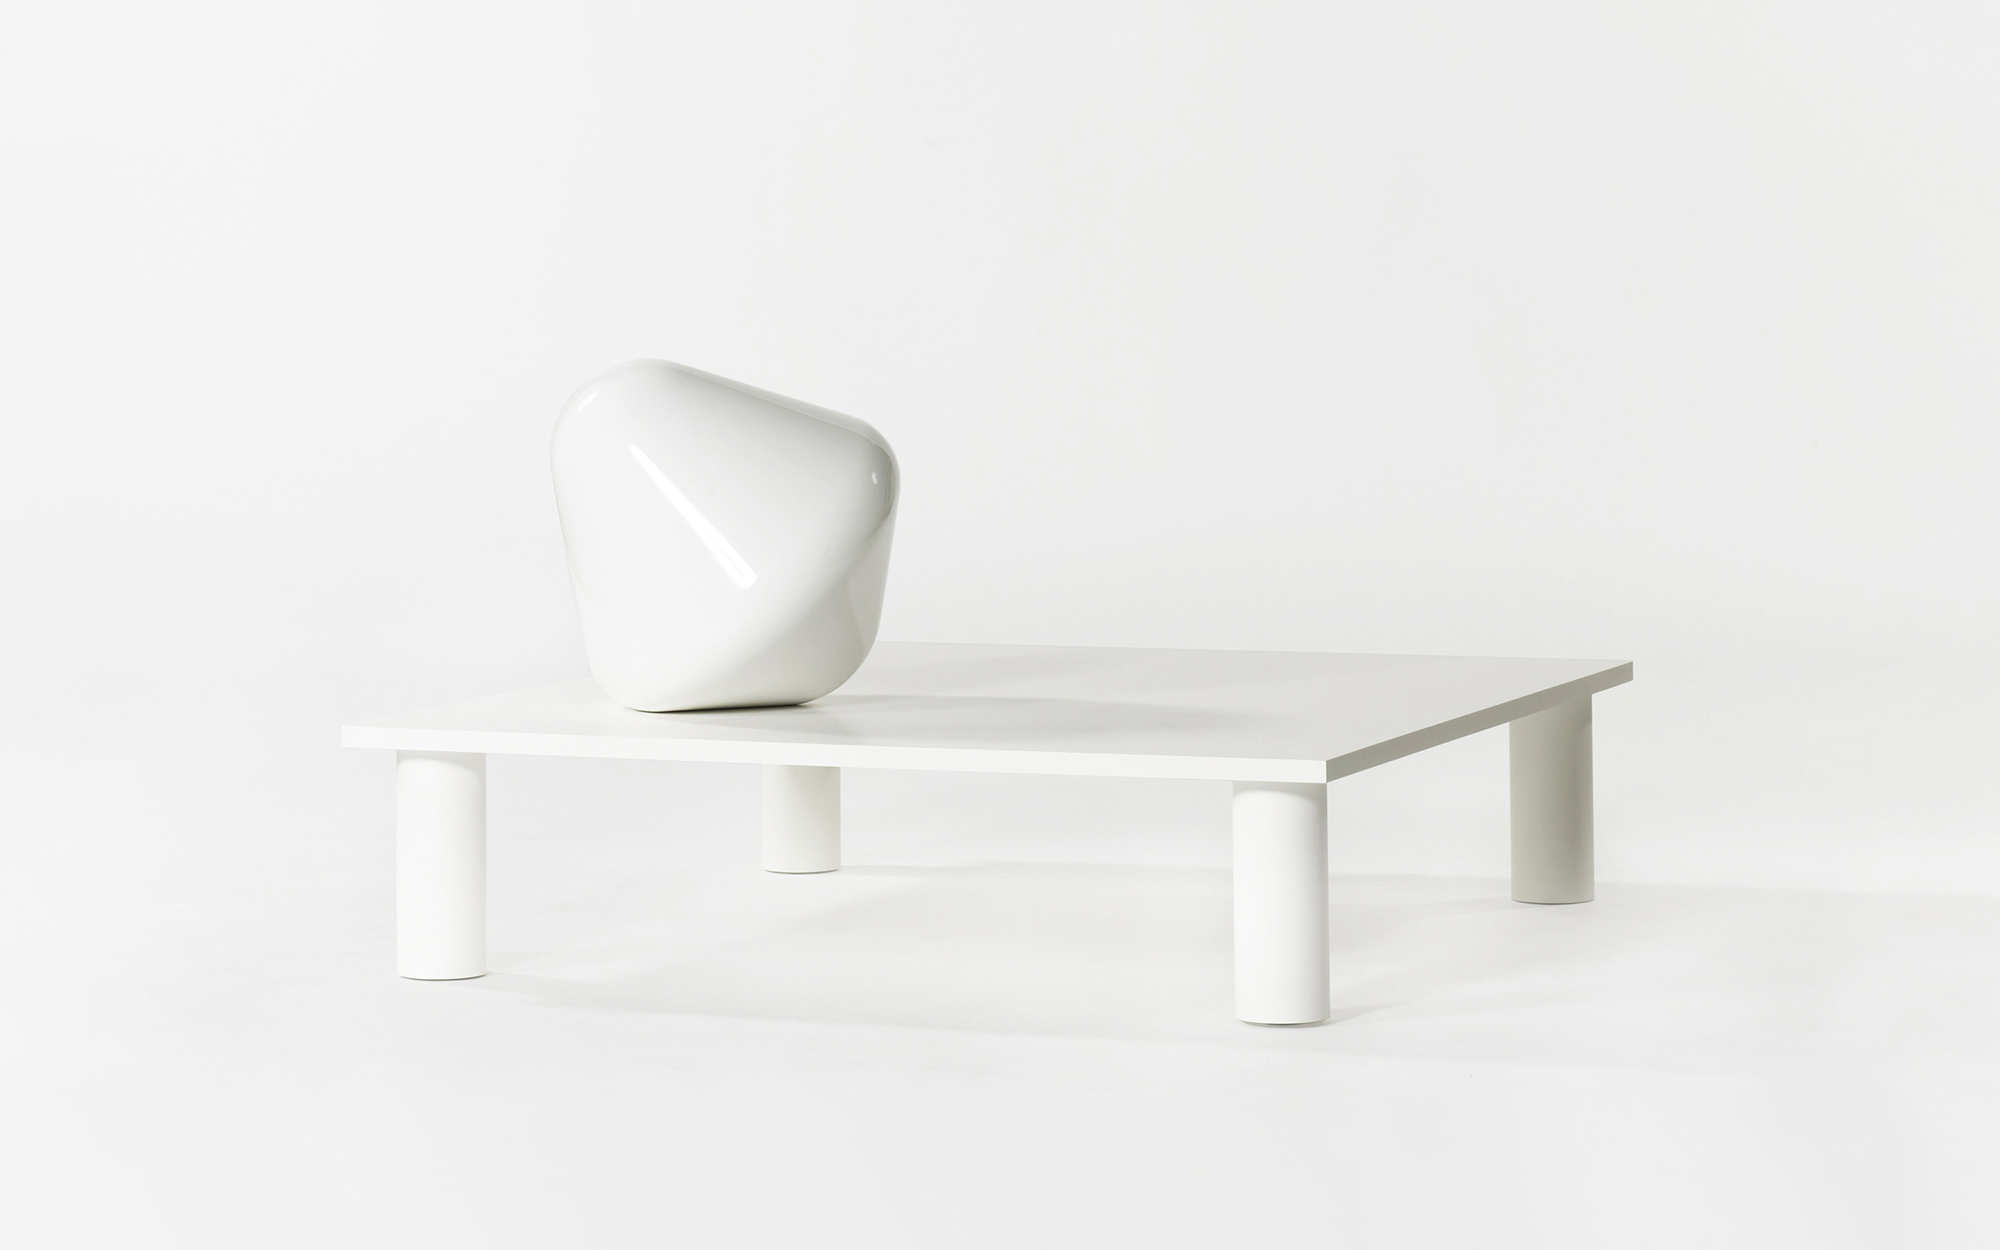 Pierre Charpin Ignotus Nomen Coffee Table